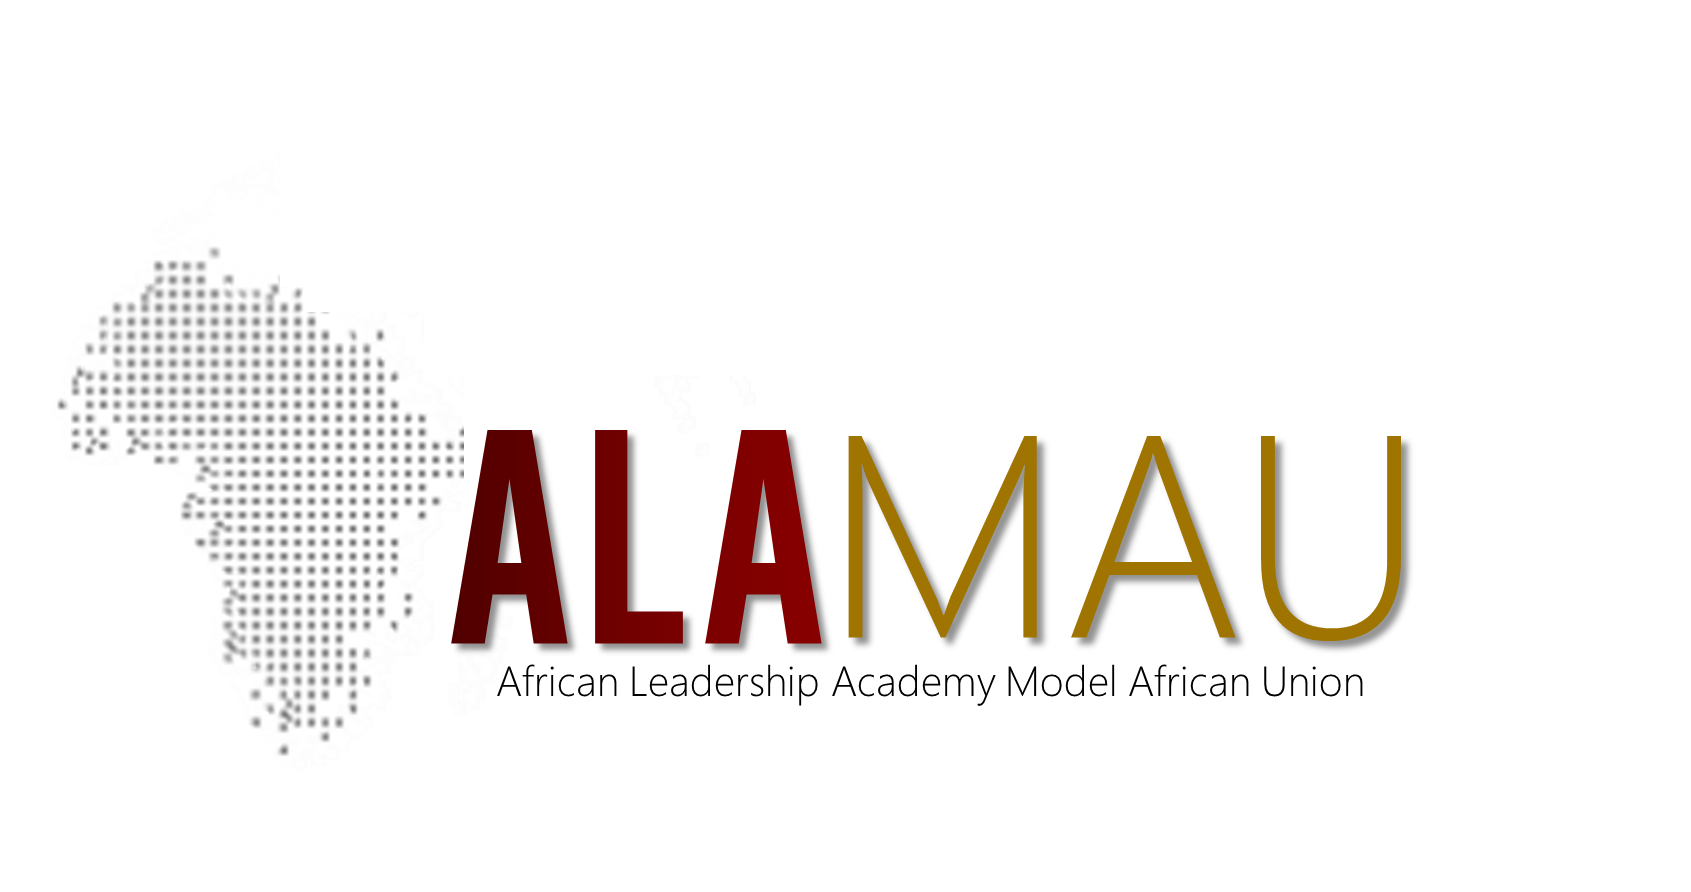 African Leadership Academy Model African Union Conference 2014